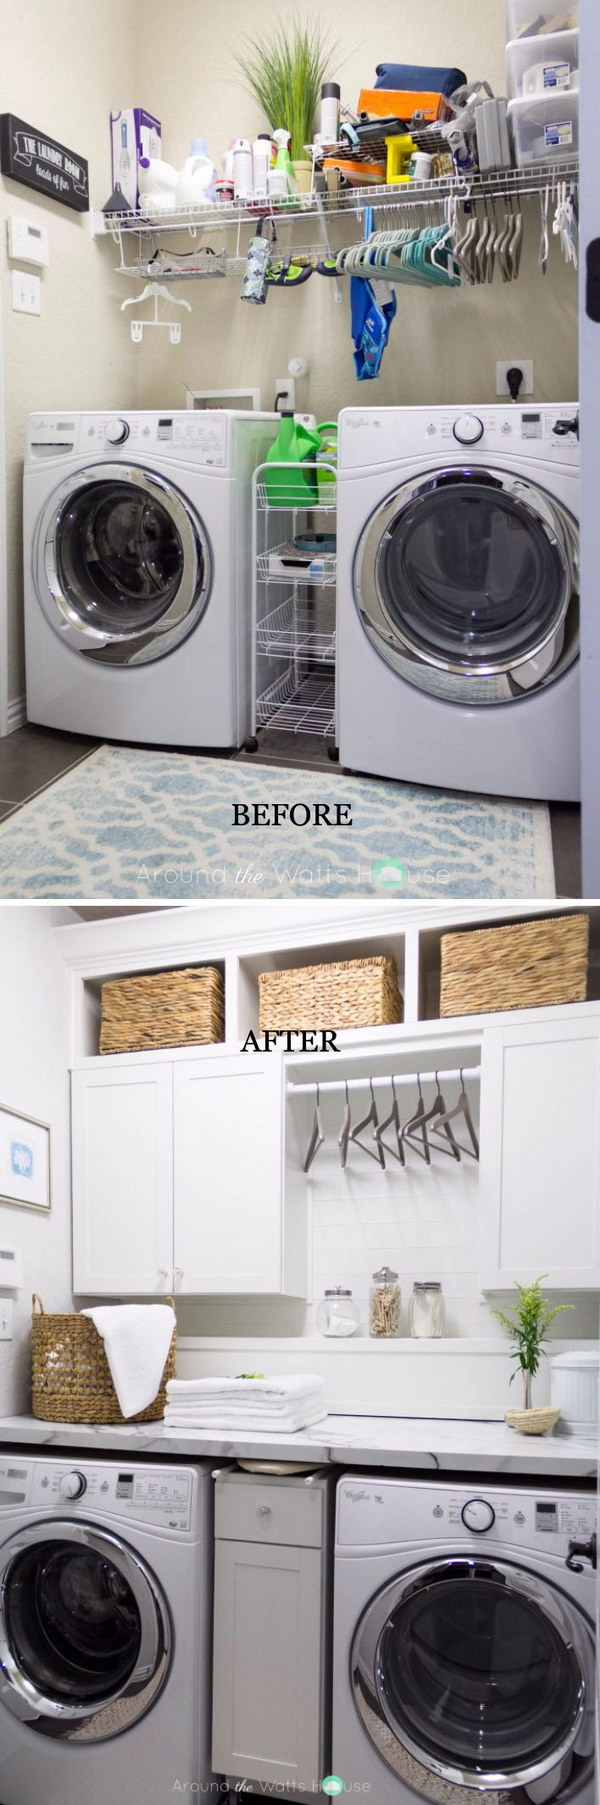 Laundry Room Reveal with Hangers between the Upper Cabinets.